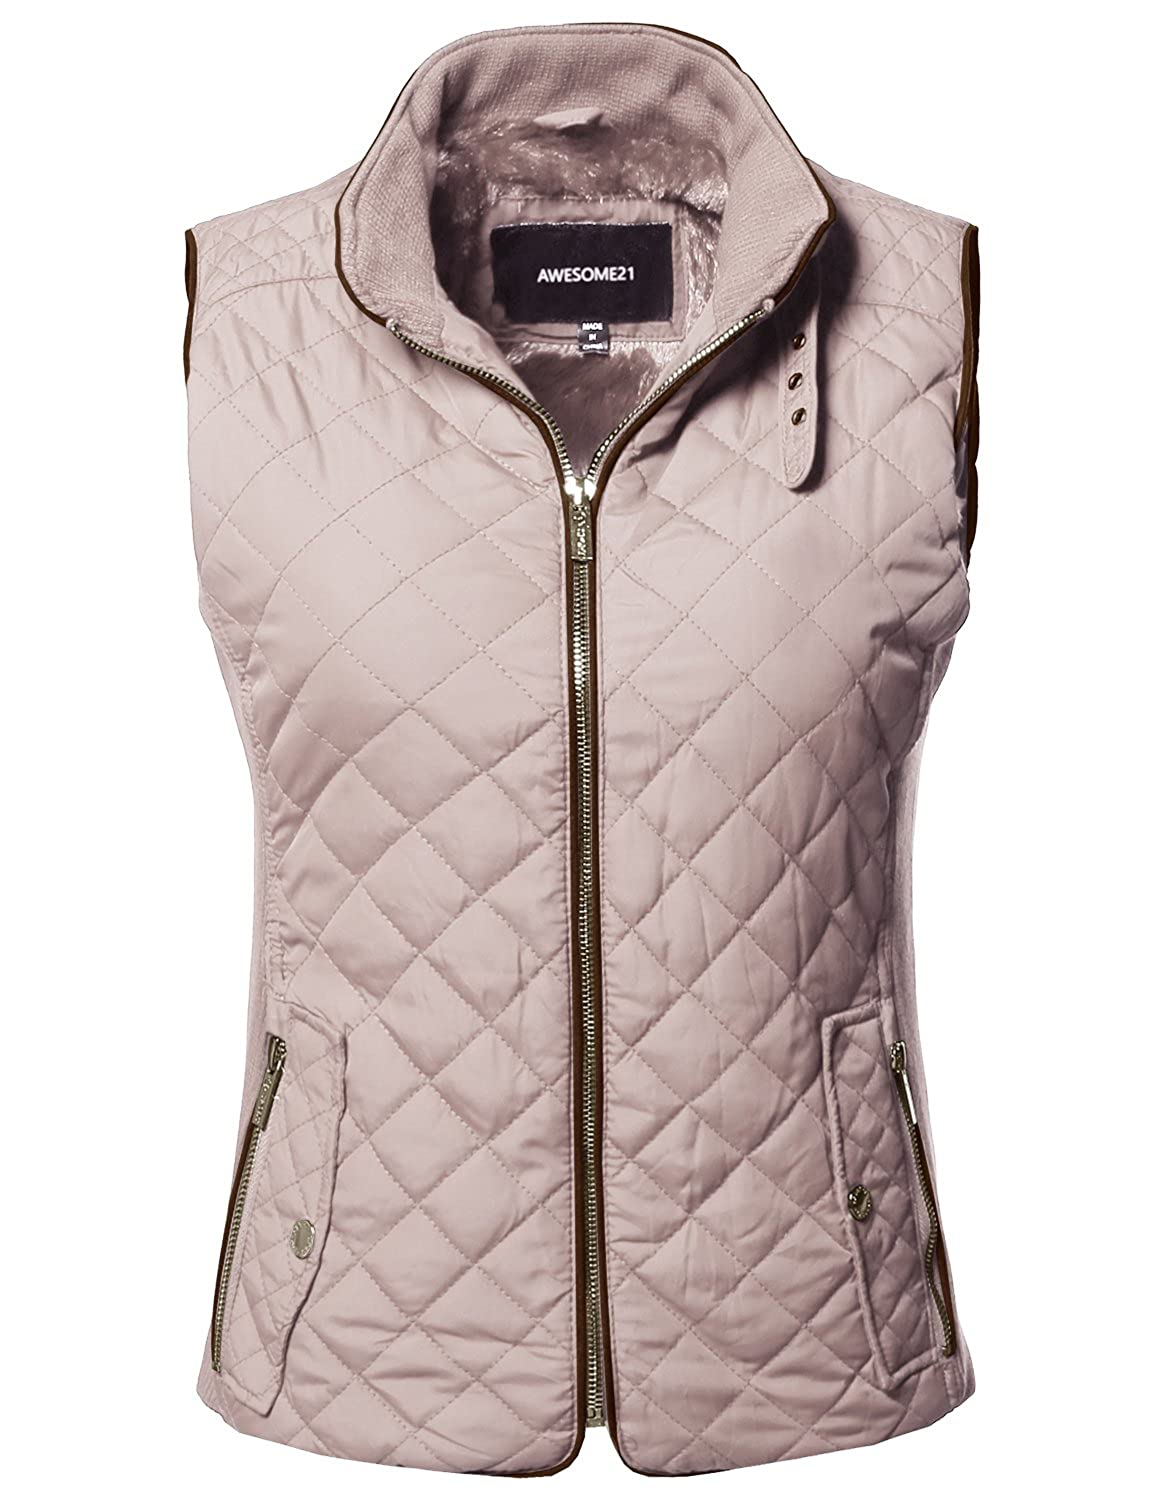 Awesome21 Women's Lightweight Quilted Zipper Snap Button Closure Padding Vest